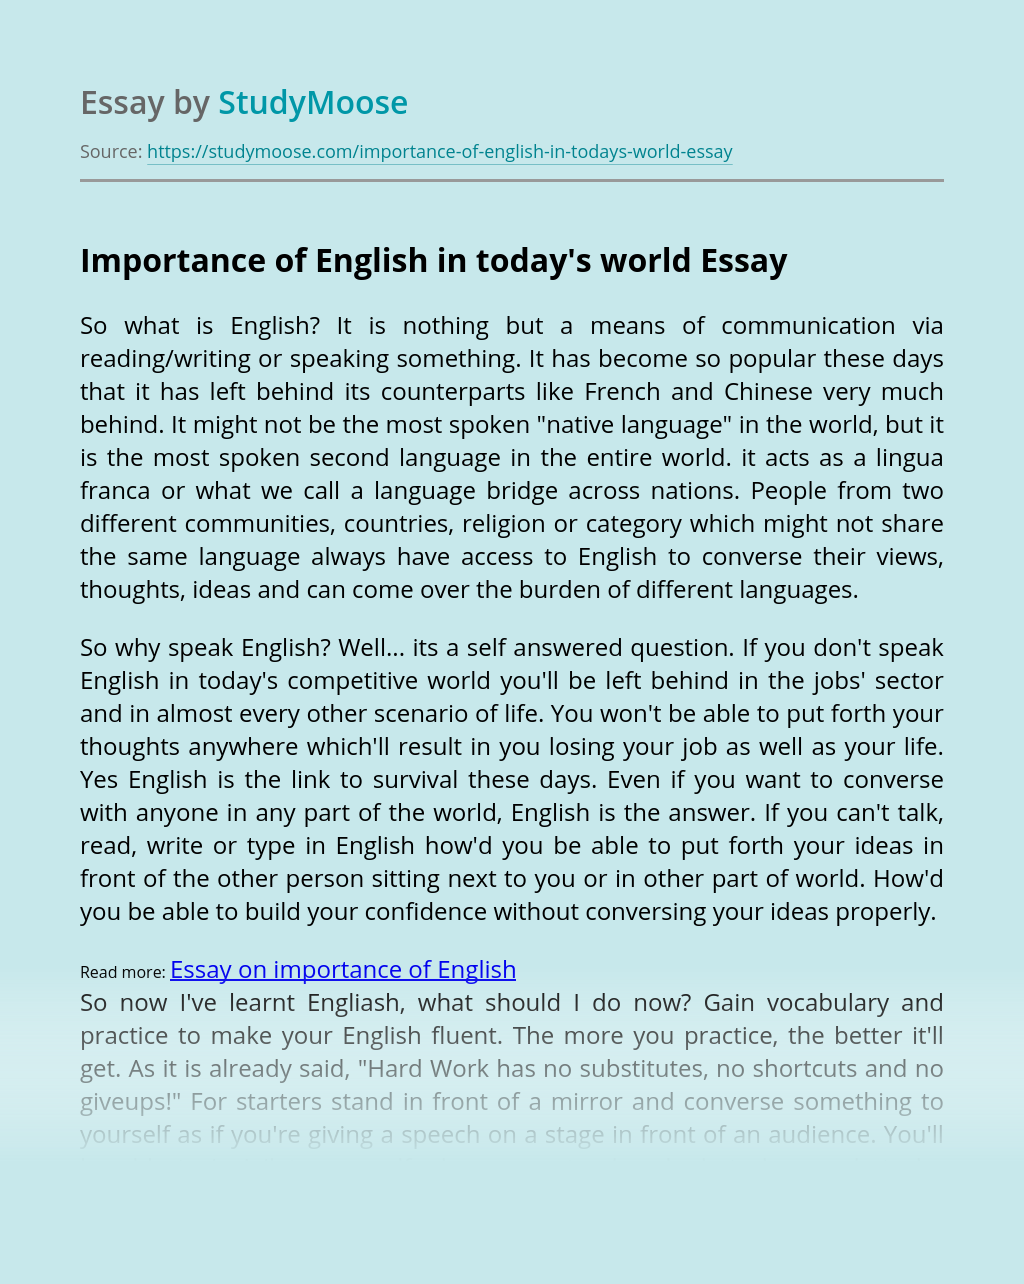 Importance of English in today's world